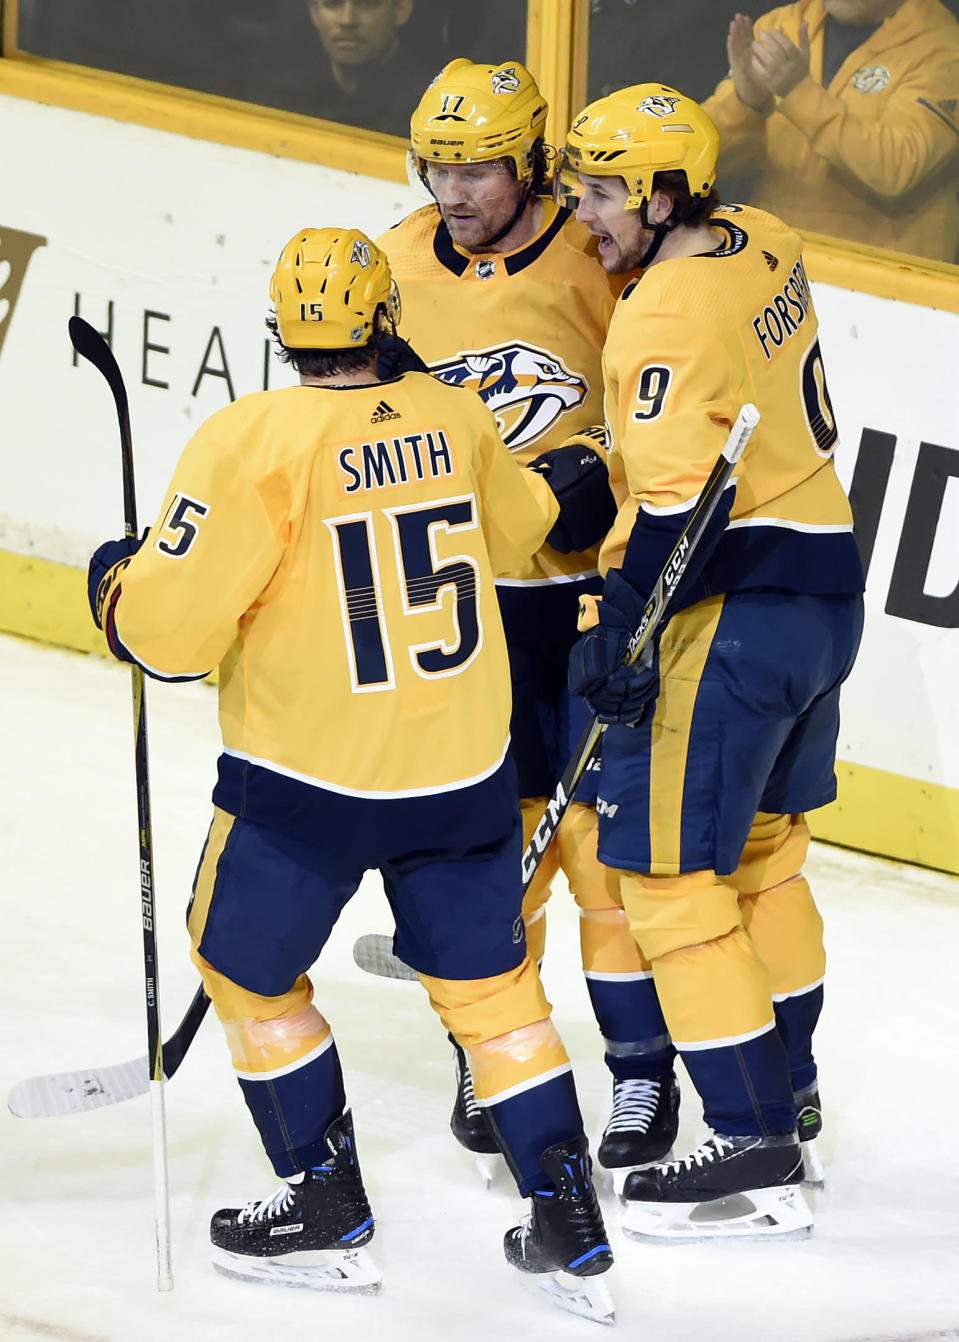 Nashville Predators left wing Filip Forsberg (9), of Sweden, celebrates with Craig Smith (15) and Scott Hartnell (17) after scoring a goal against the Columbus Blue Jackets during the first period of an NHL hockey game Saturday, April 7, 2018, in Nashville, Tenn. (AP Photo/Mark Zaleski)